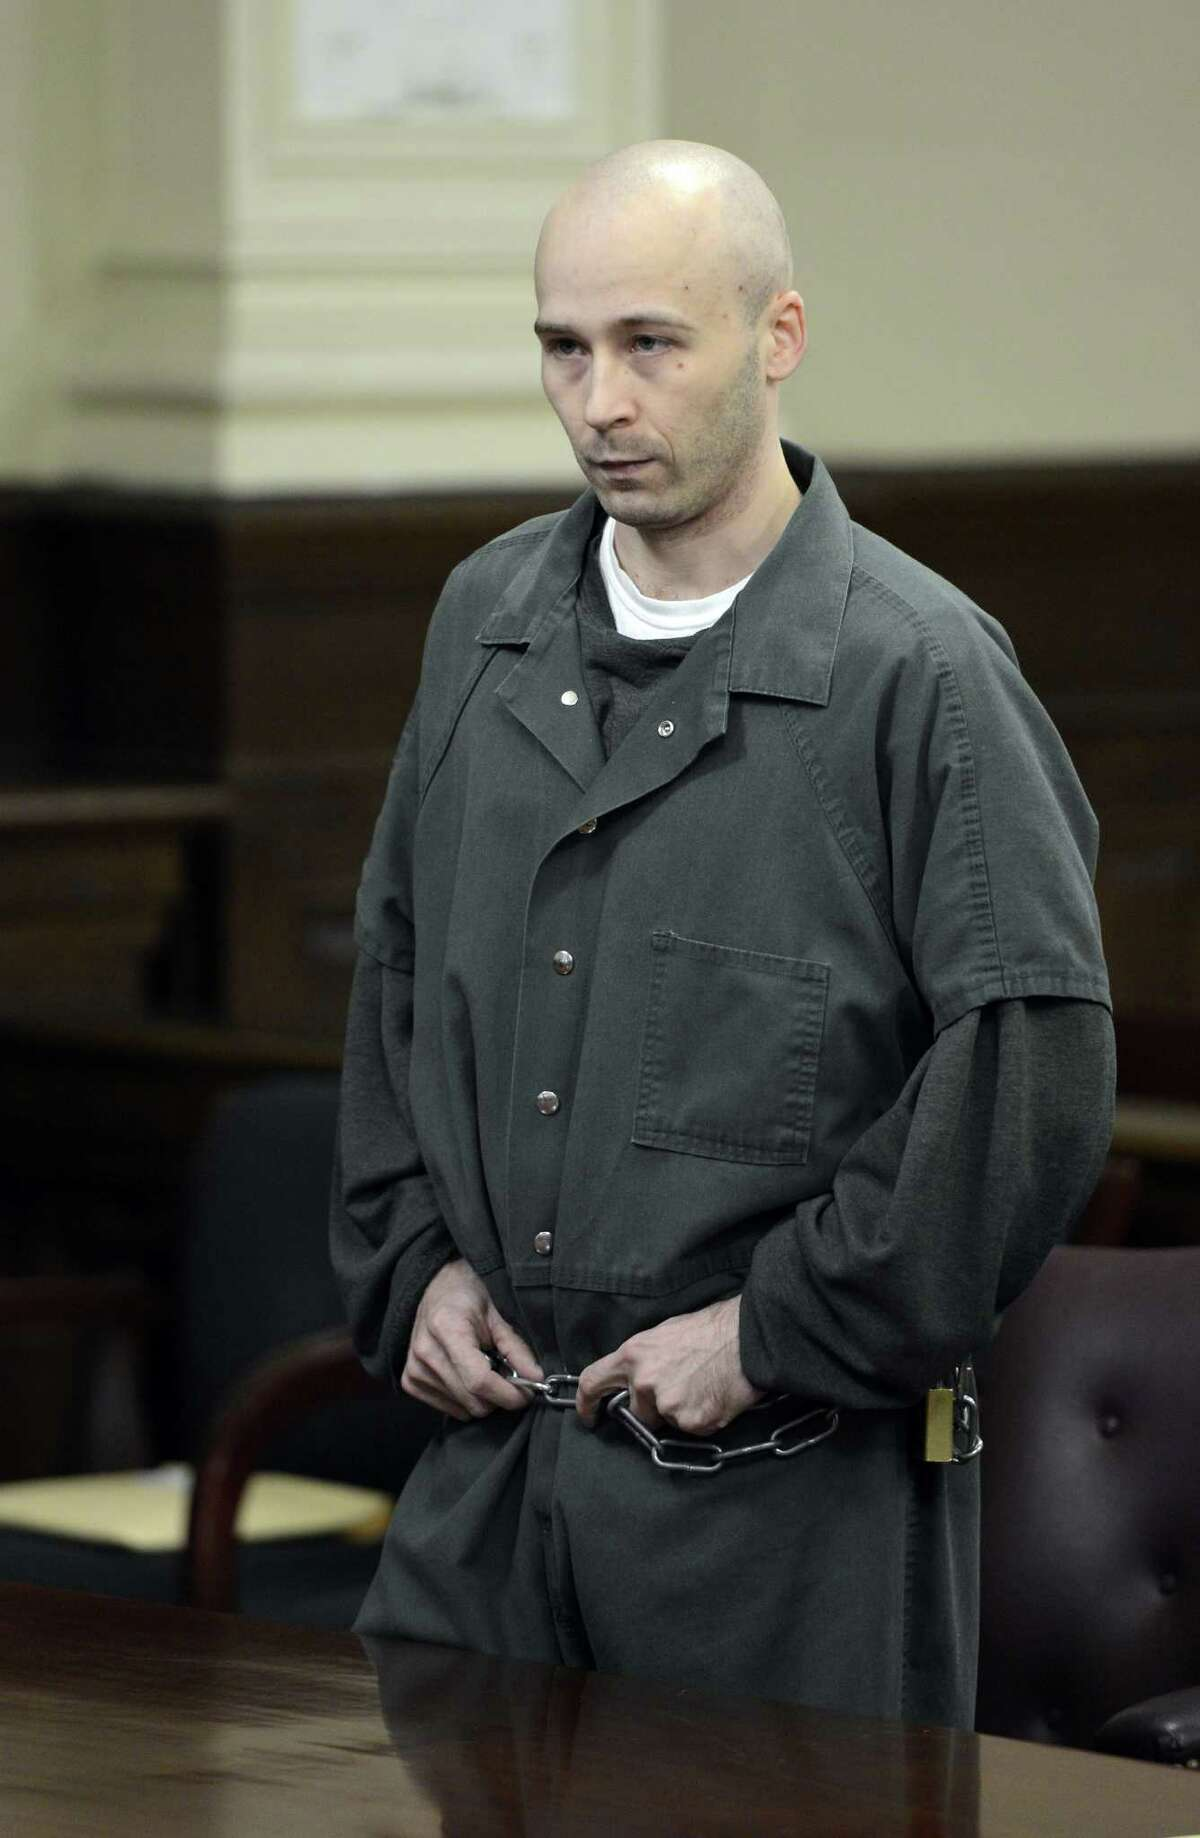 Robert Hayden was sentenced for killing a child he was babysitting. Hayden's sentence was imposed by Rensselaer County Judge Andrew Ceresia in the Rensselaer County Courthouse in Troy, N.Y. Oct 25, 2012. (Skip Dickstein/Times Union)